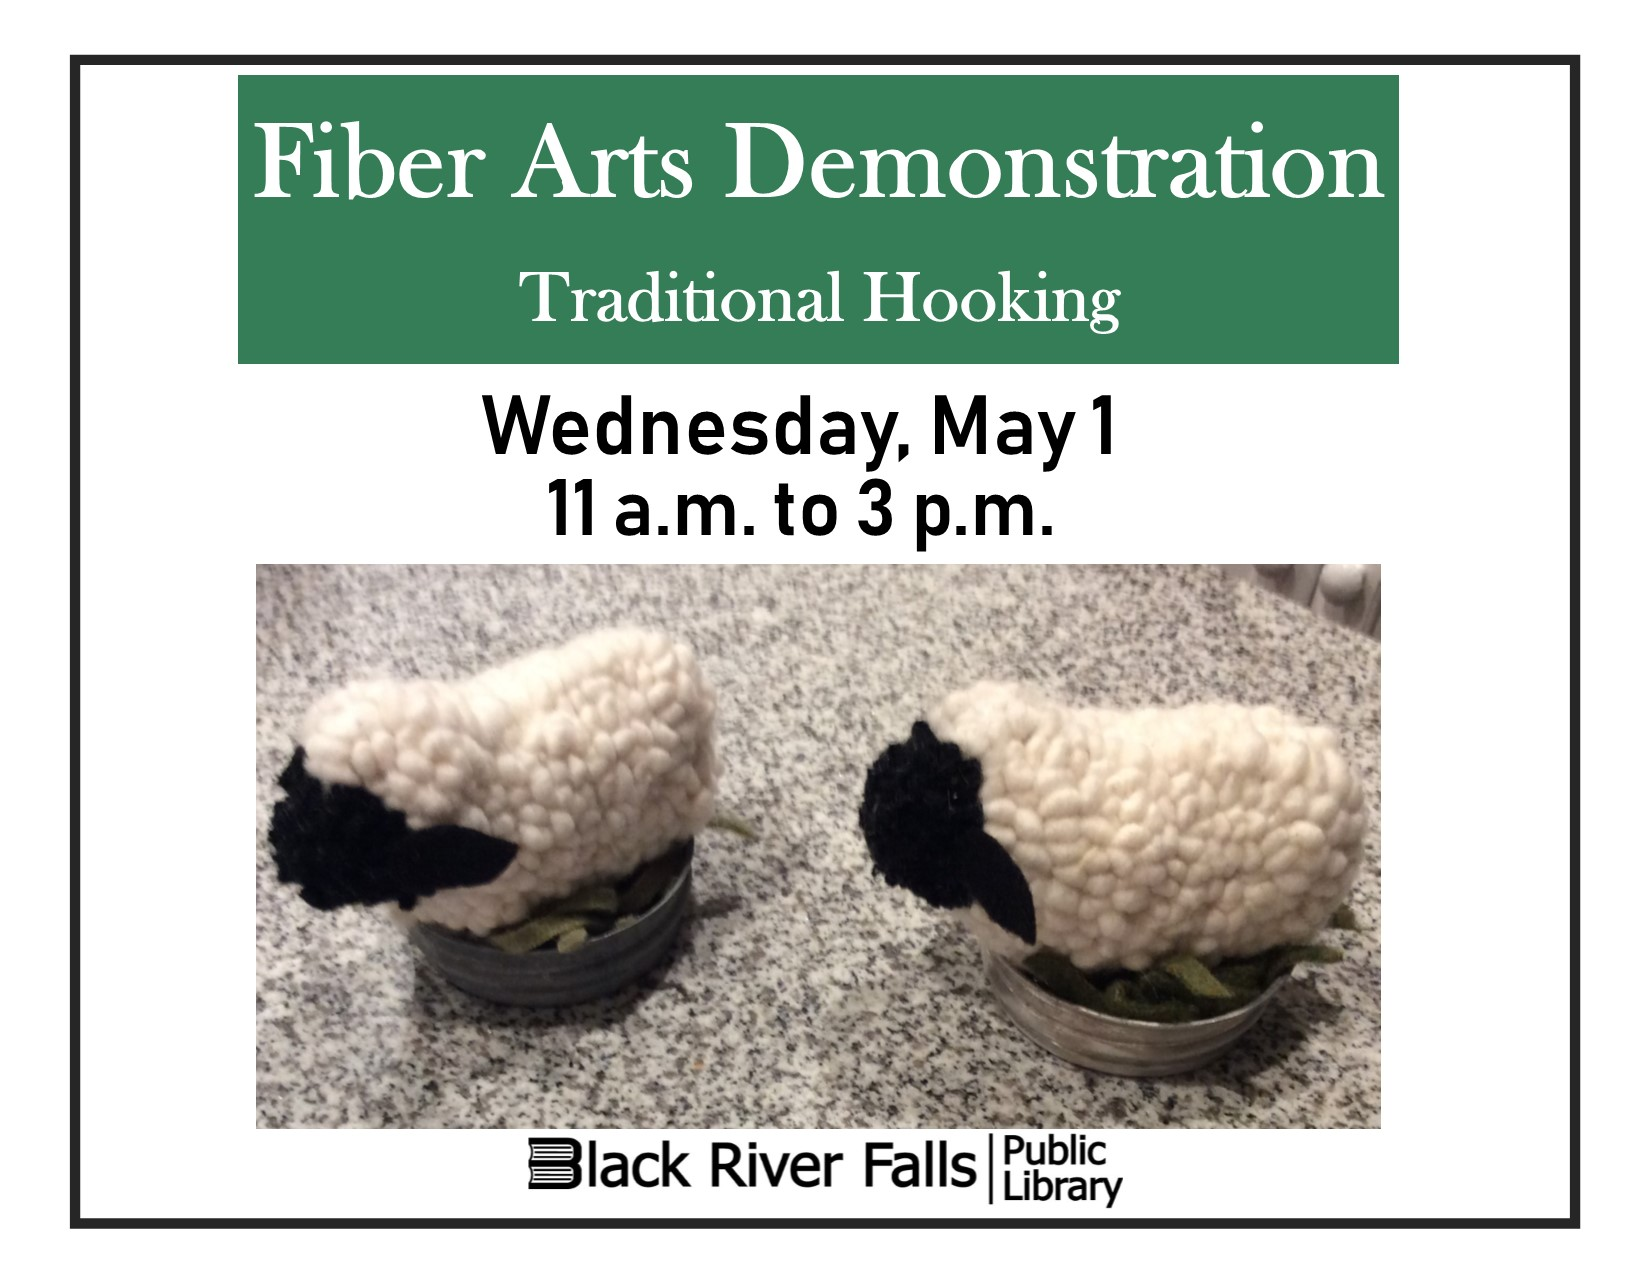 Fiber Arts Demonstration